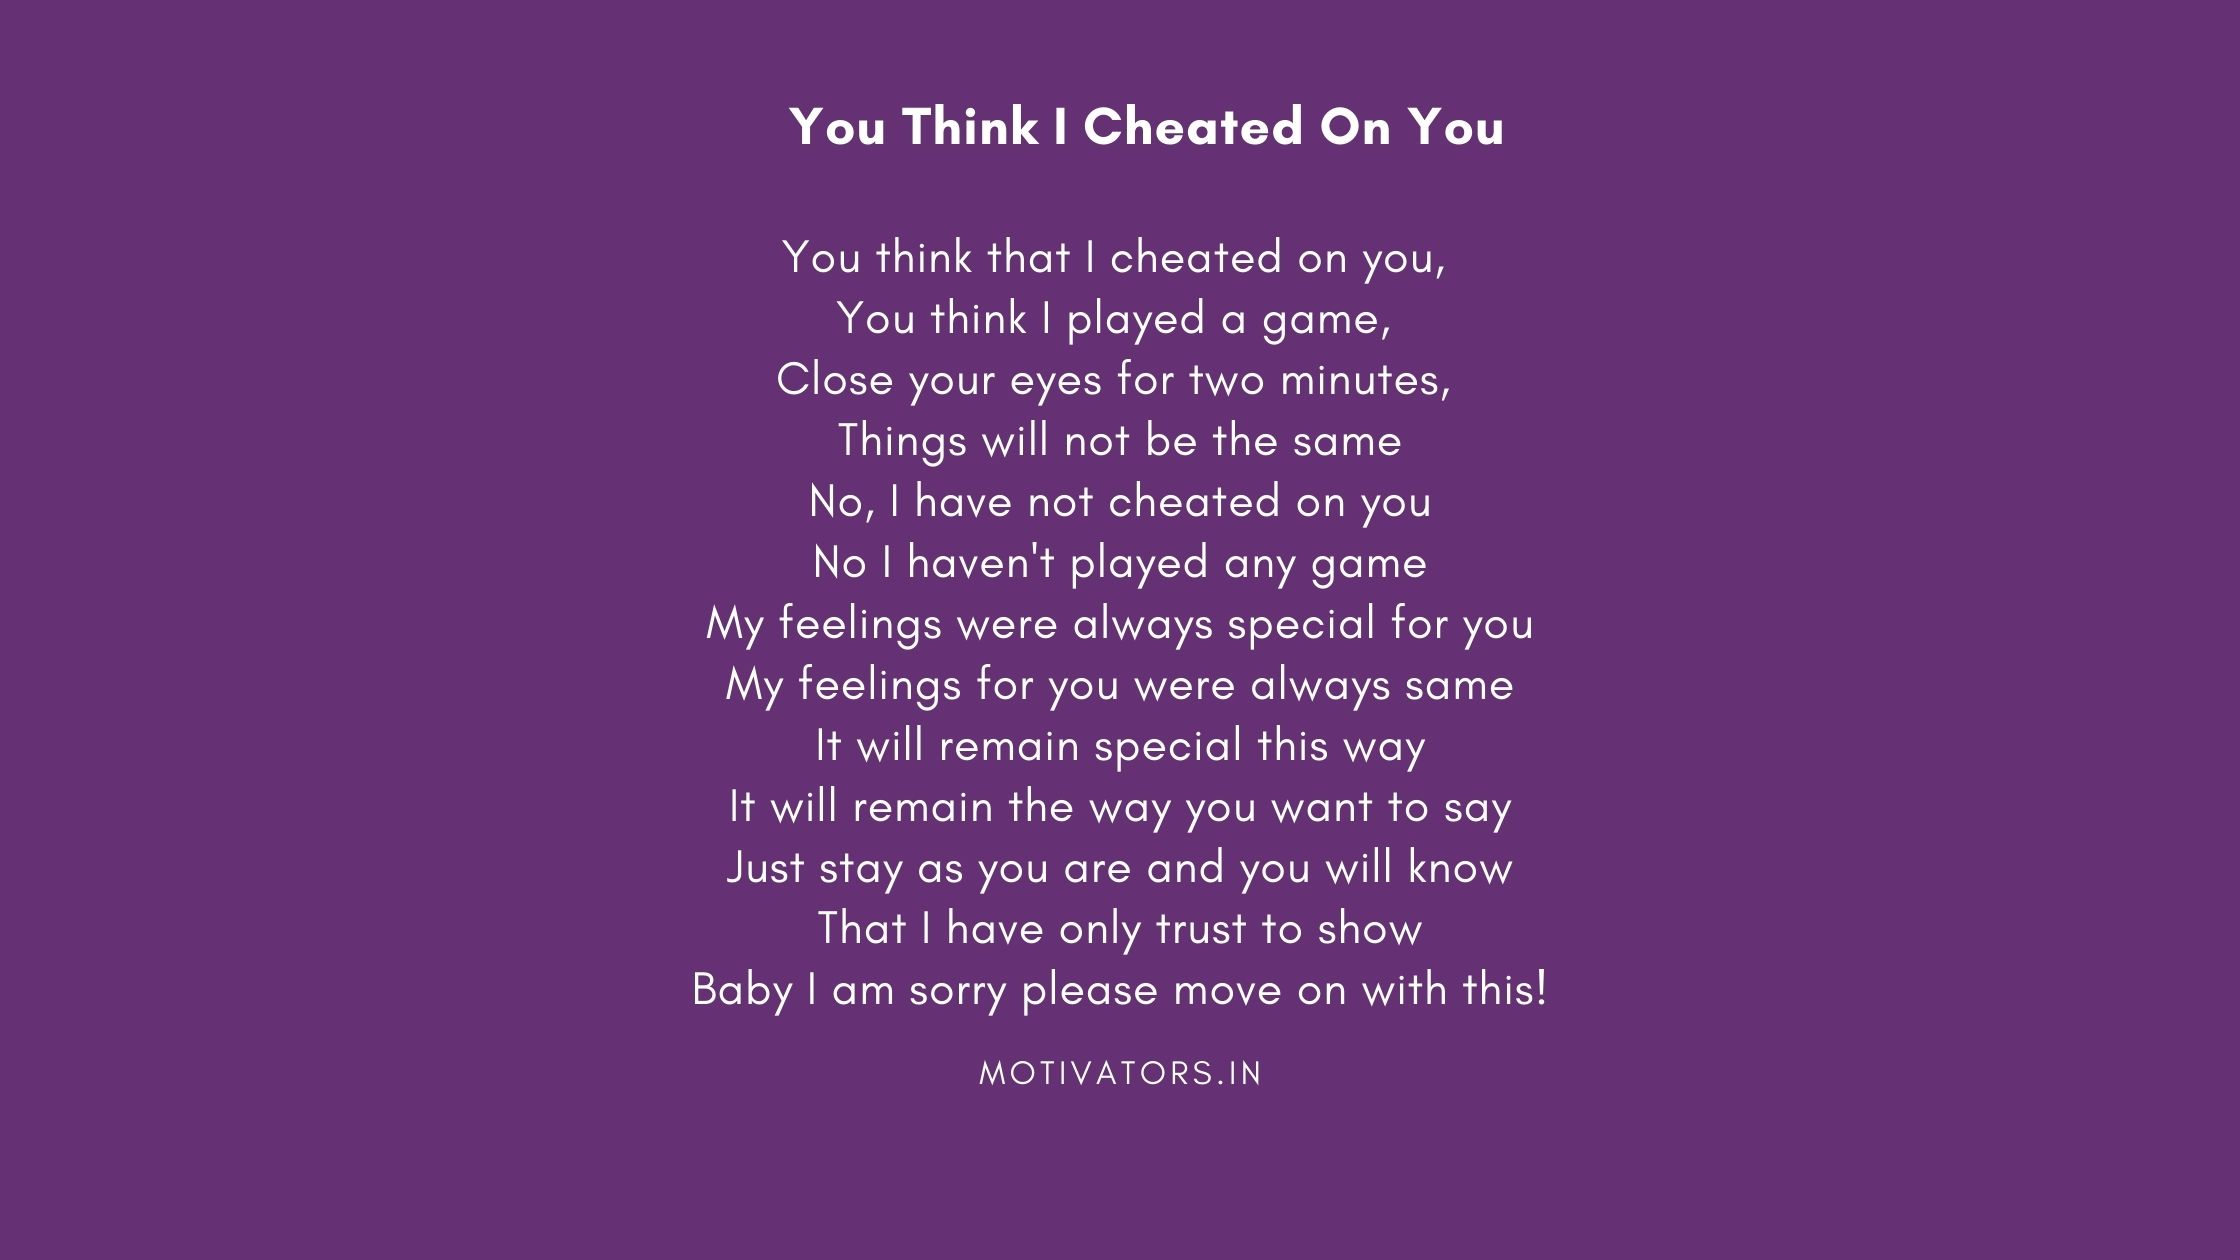 You Think I Cheated On You